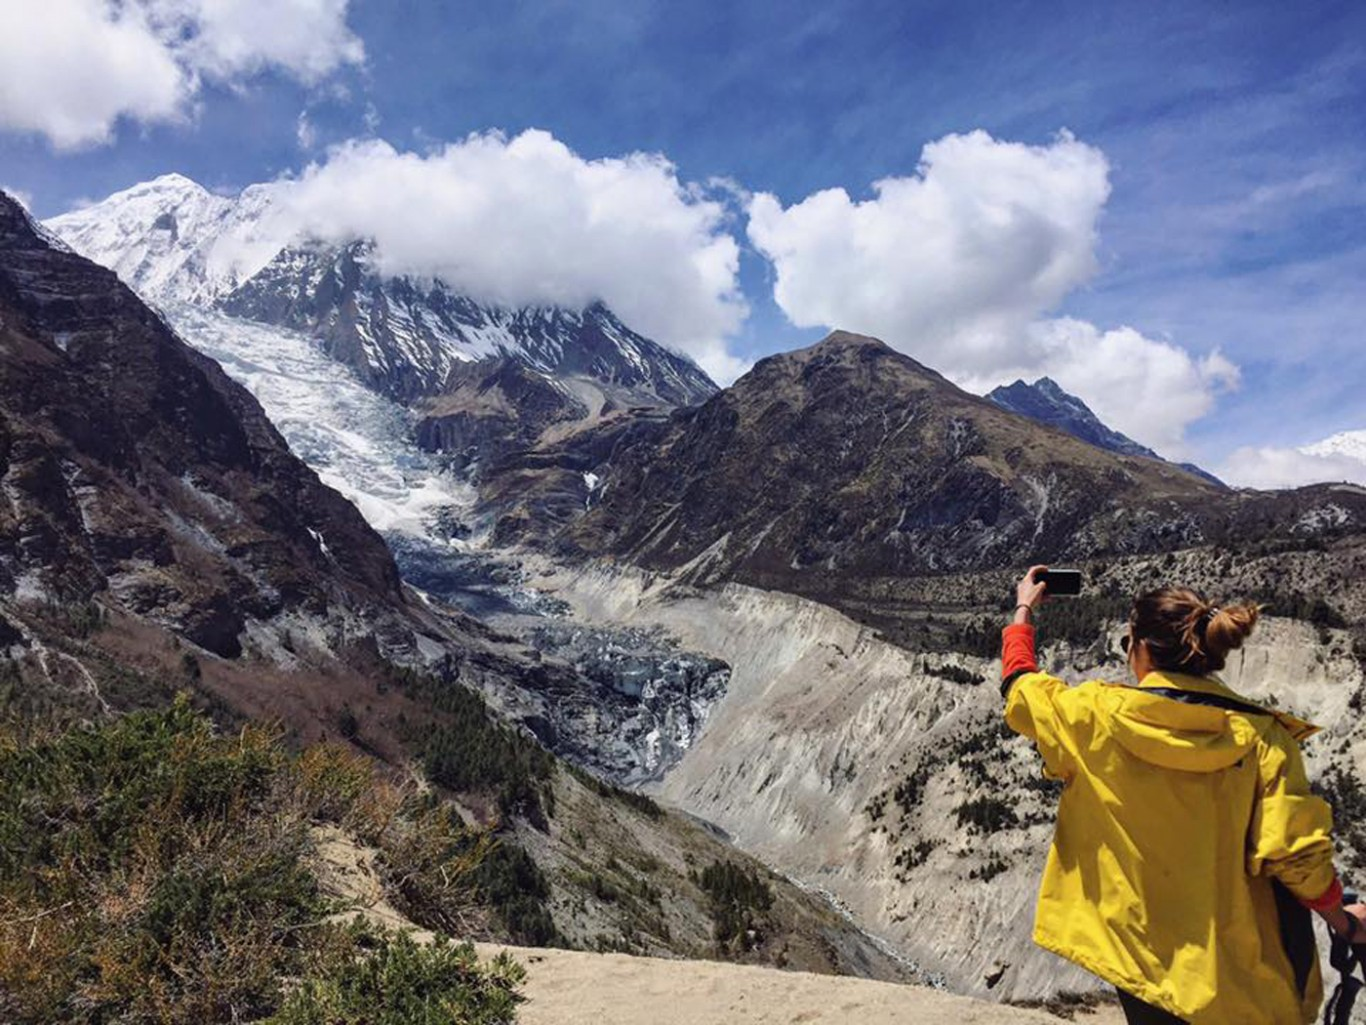 Annapurna circuit and upper Mustang trekking